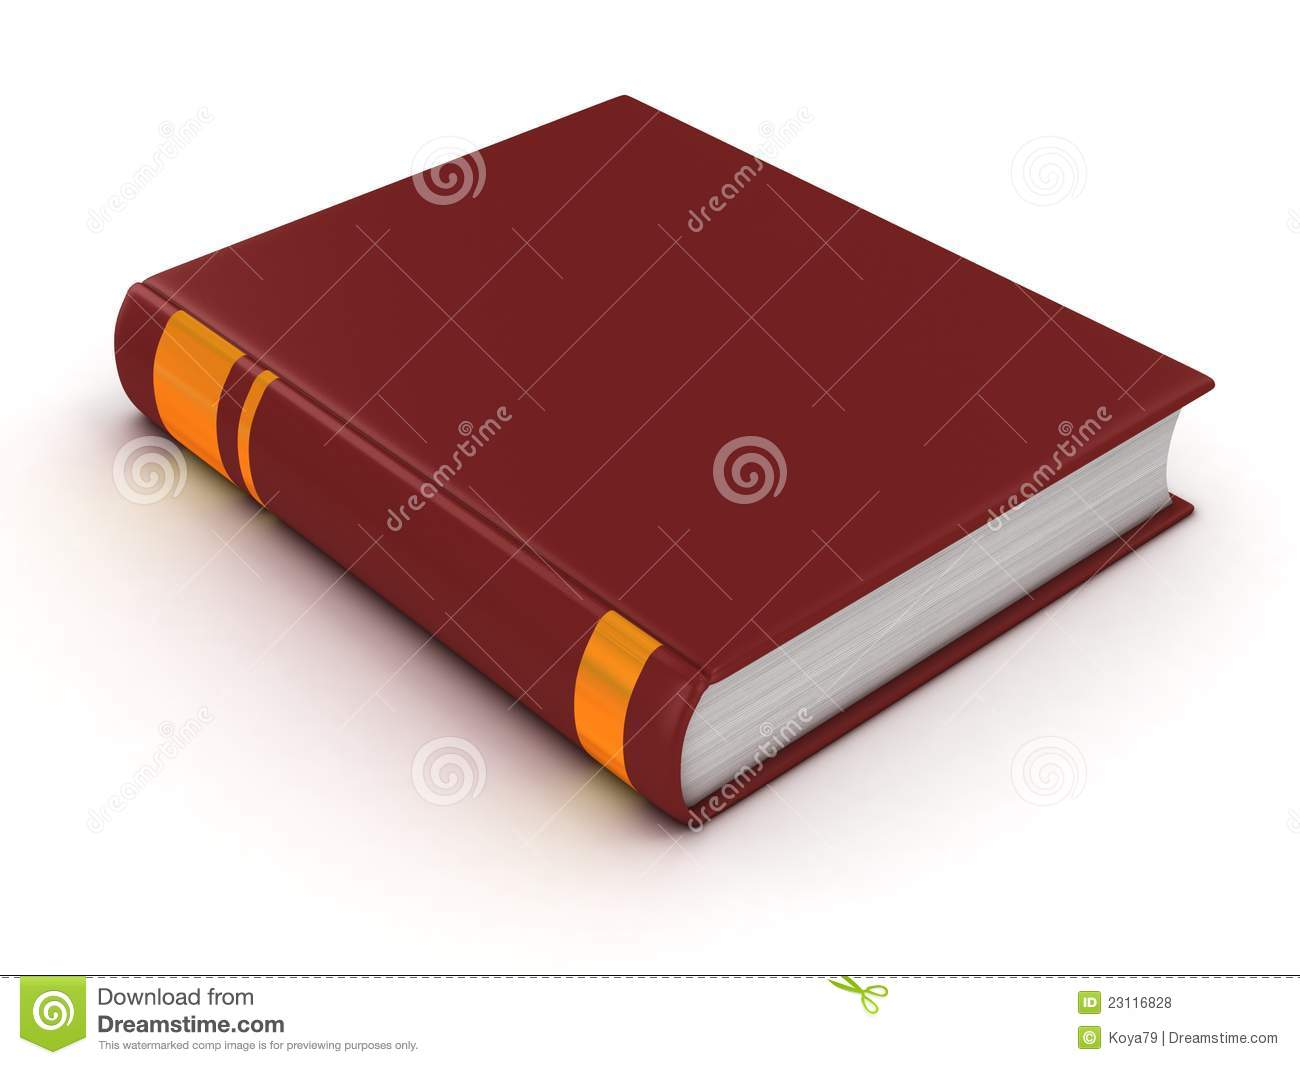 Cookbook With Red Cover : Blank book with red cover royalty free stock photos